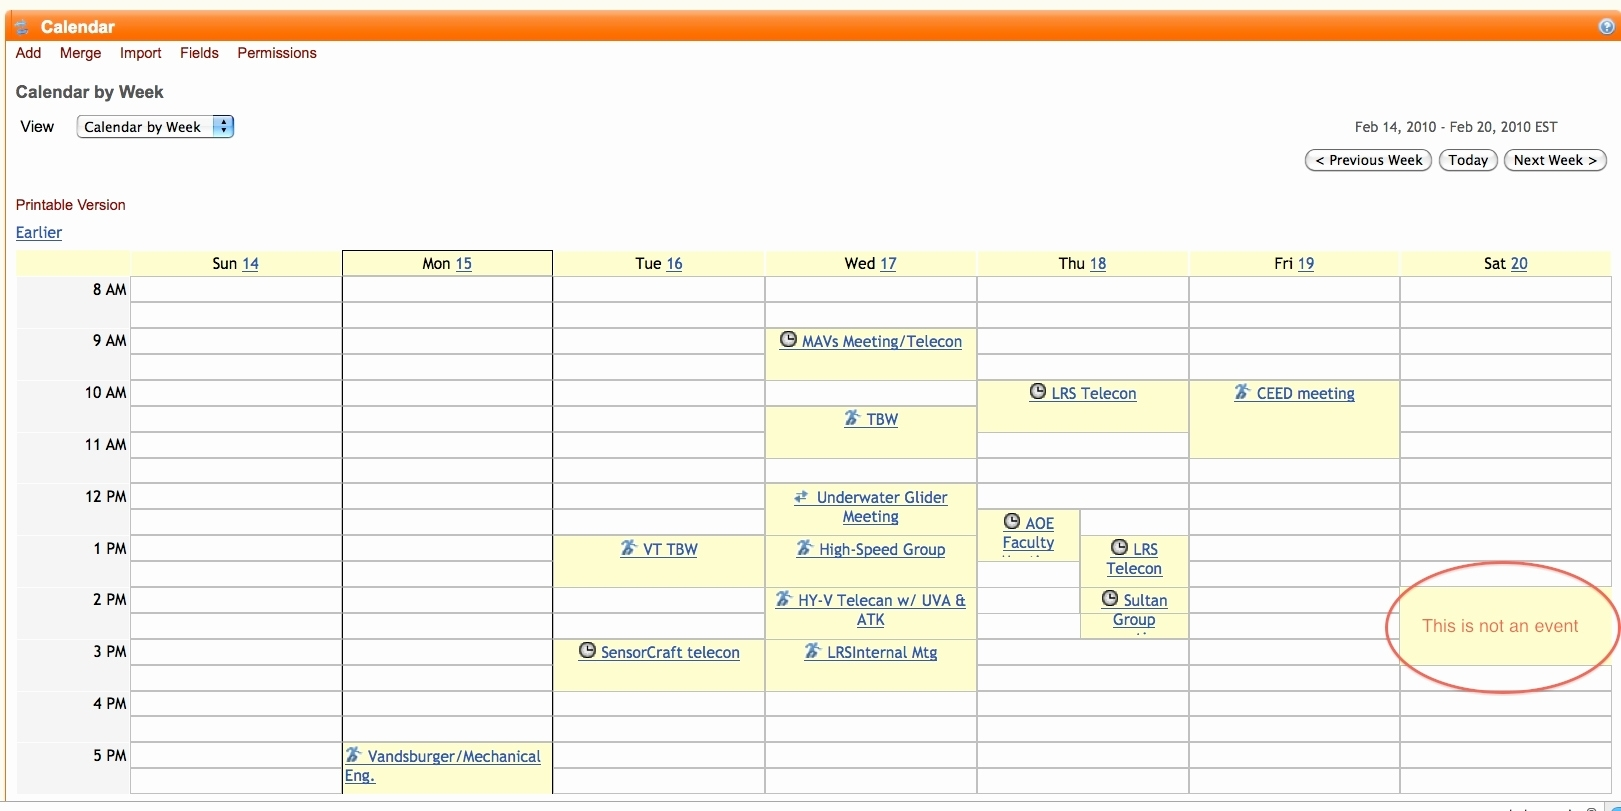 Unique 35 Sample Weekly Calendar With Time Slots Printable Free inside Weekly Calendar With Time Slots Printable